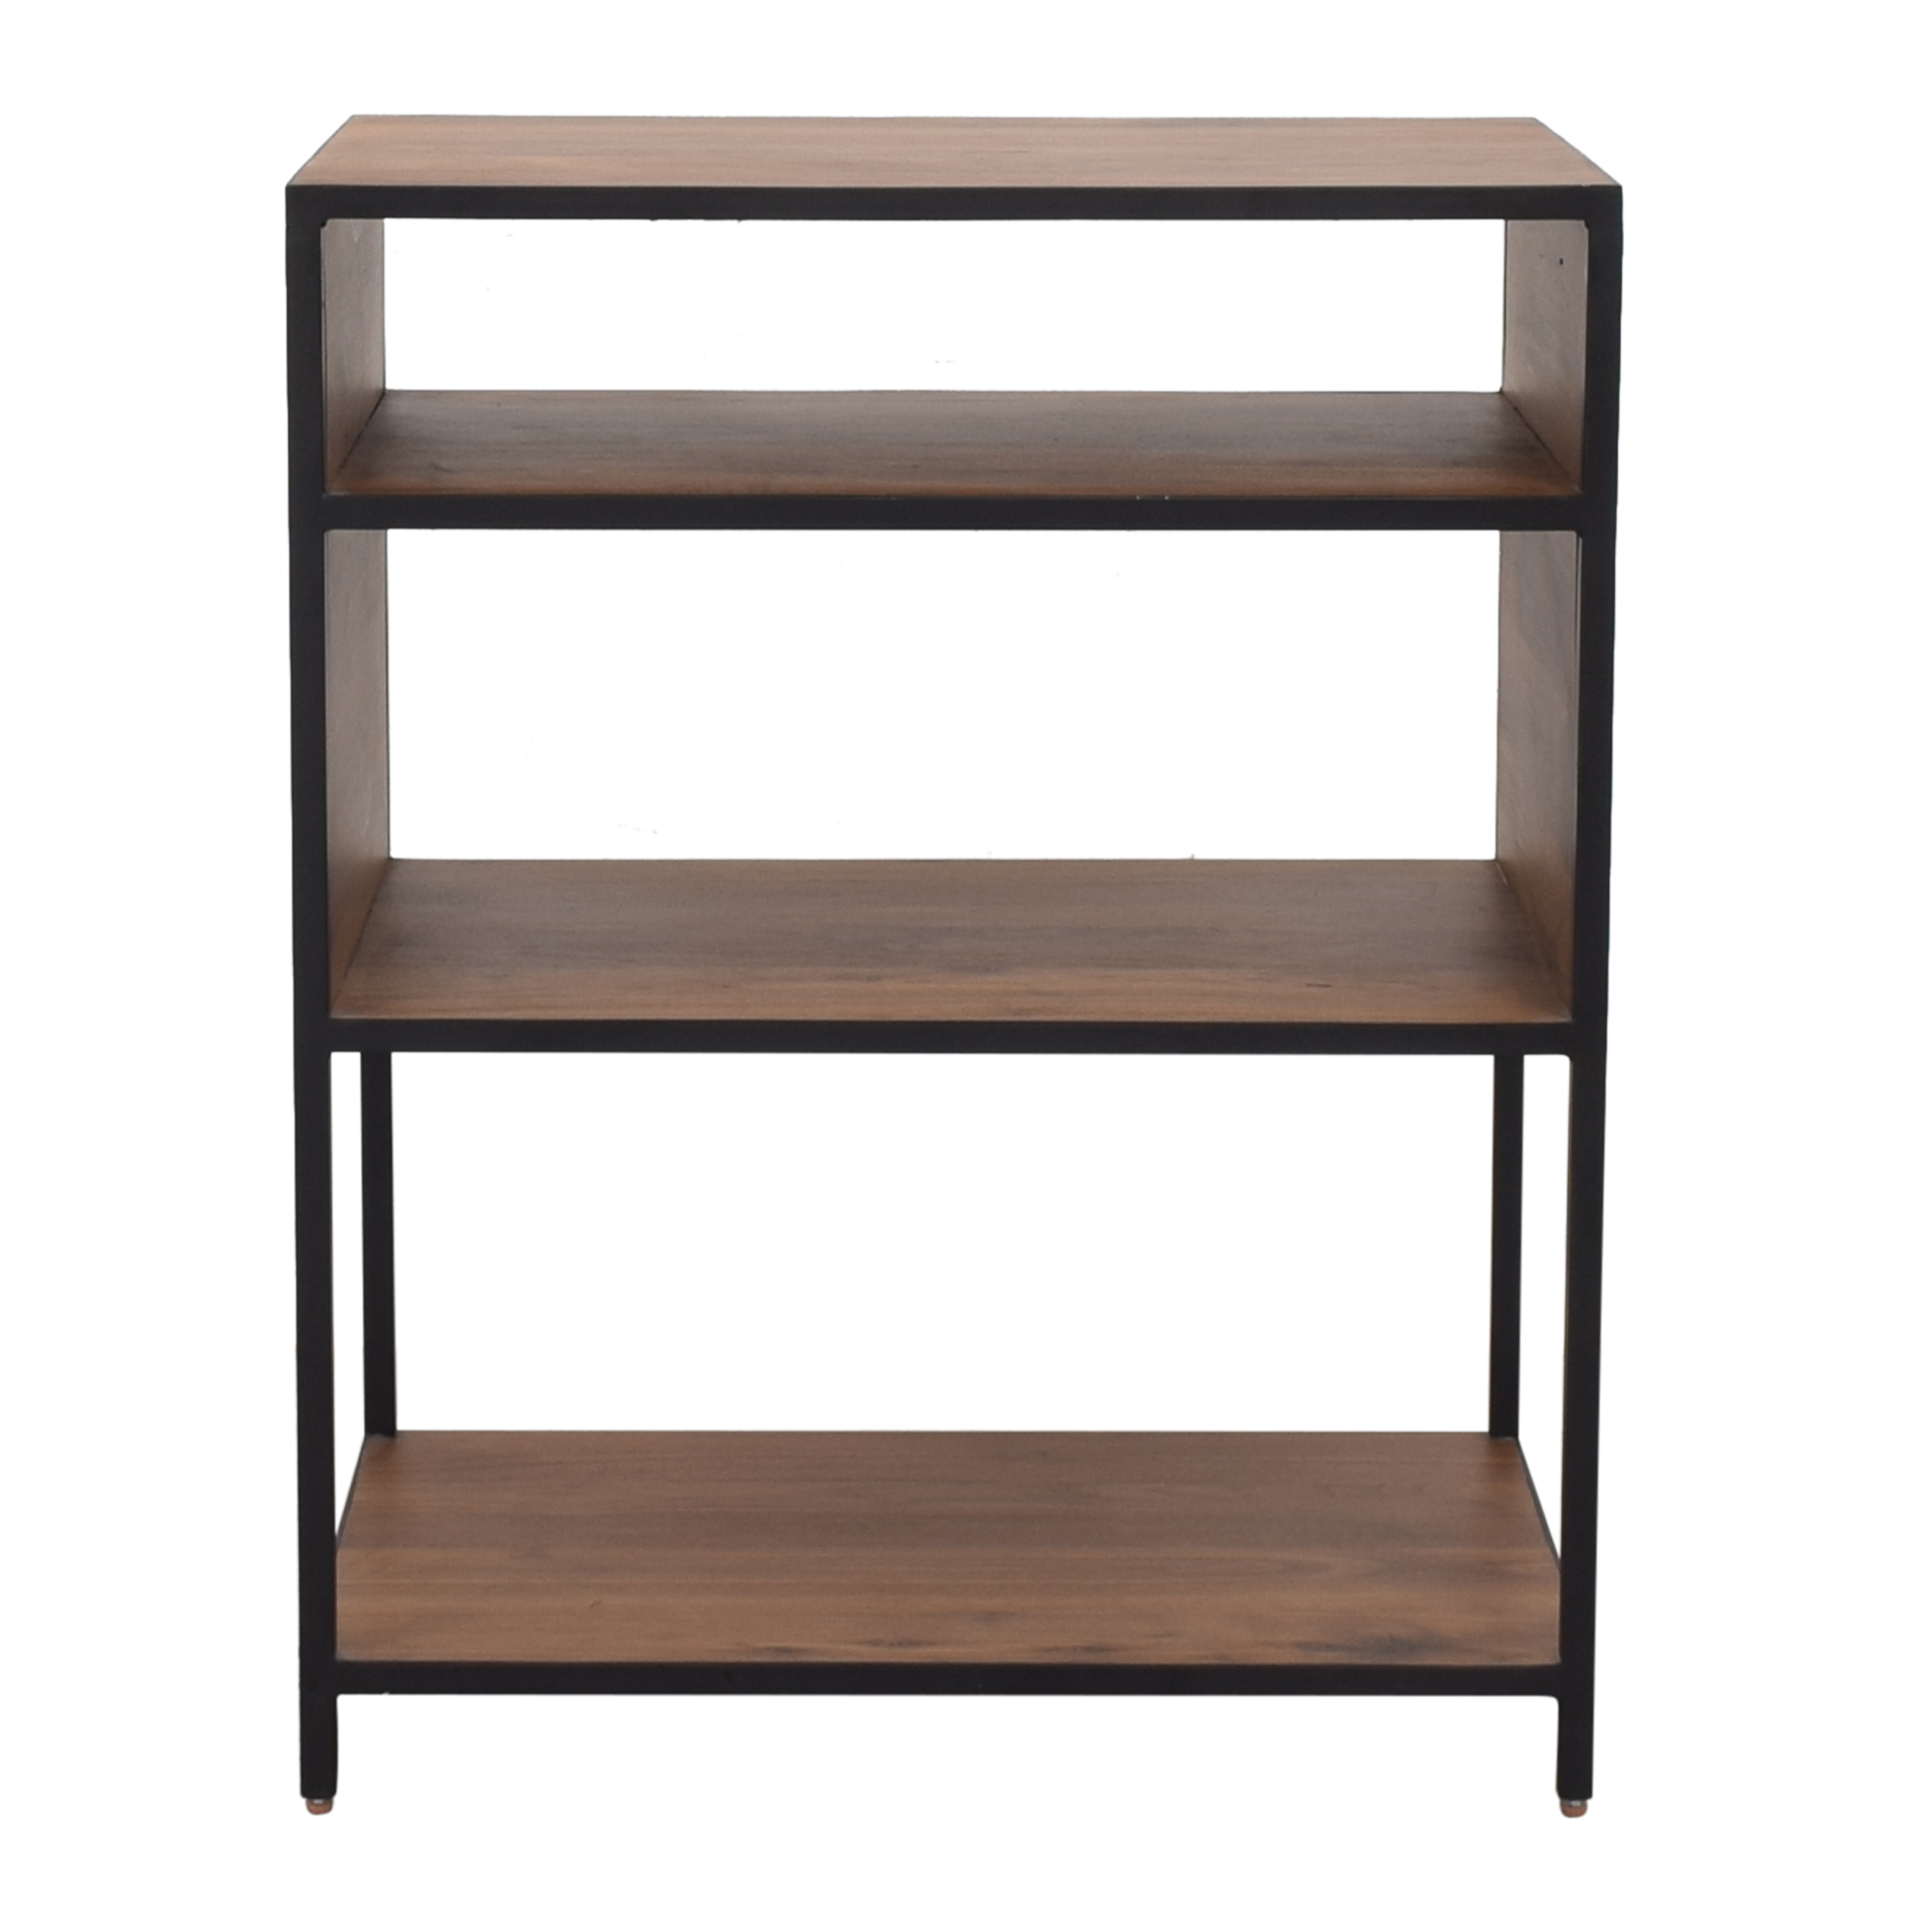 Crate & Barrel Knox Low Open Bookcase Crate & Barrel